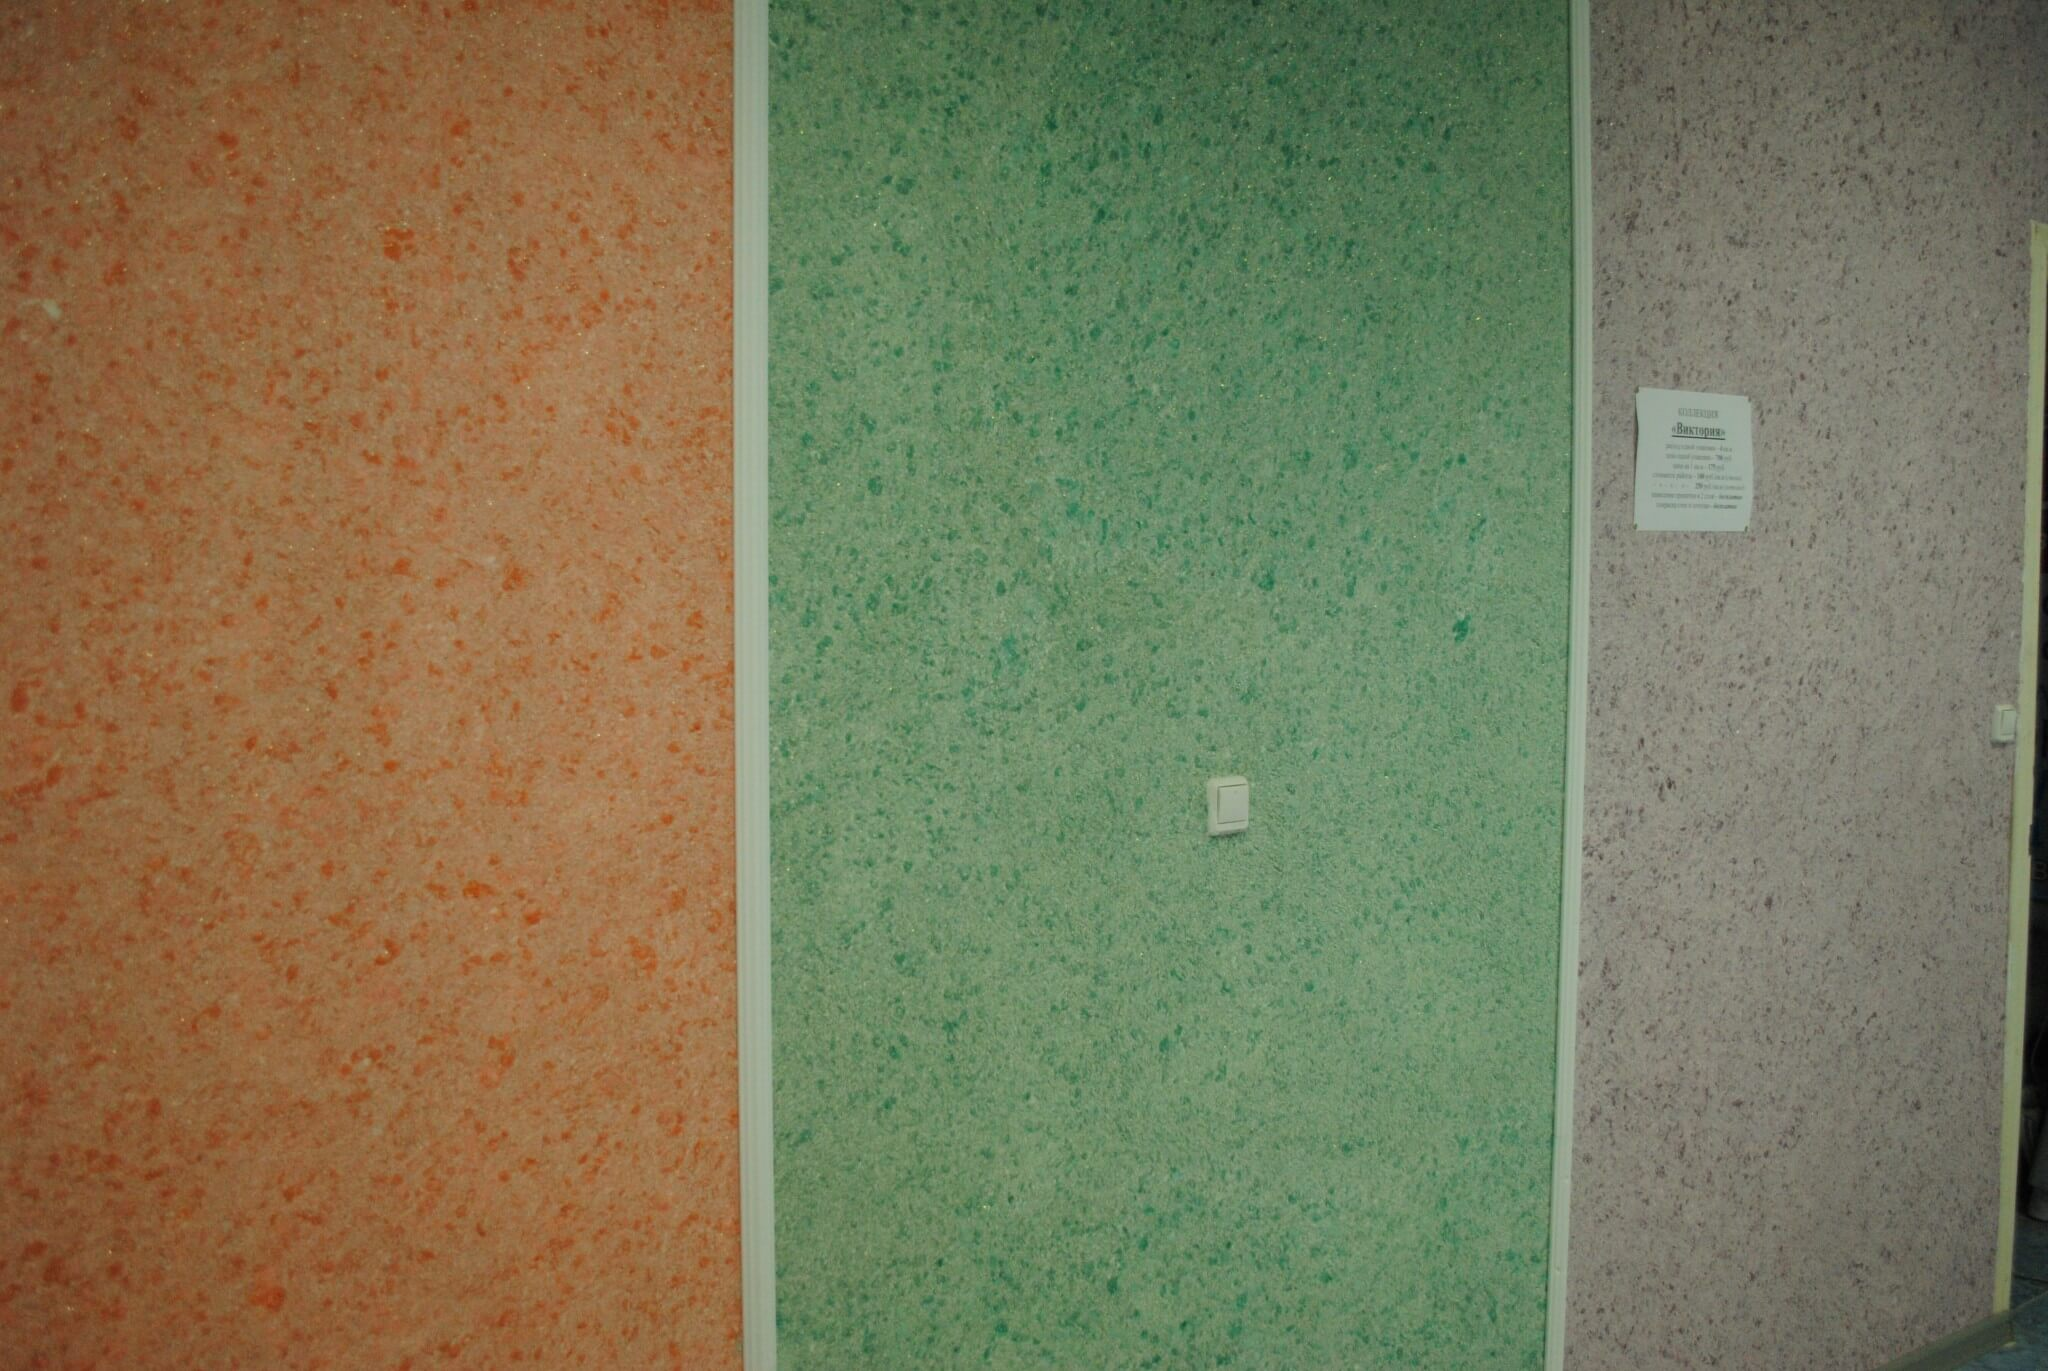 Exmples of different color variations for wallpaper at the shop